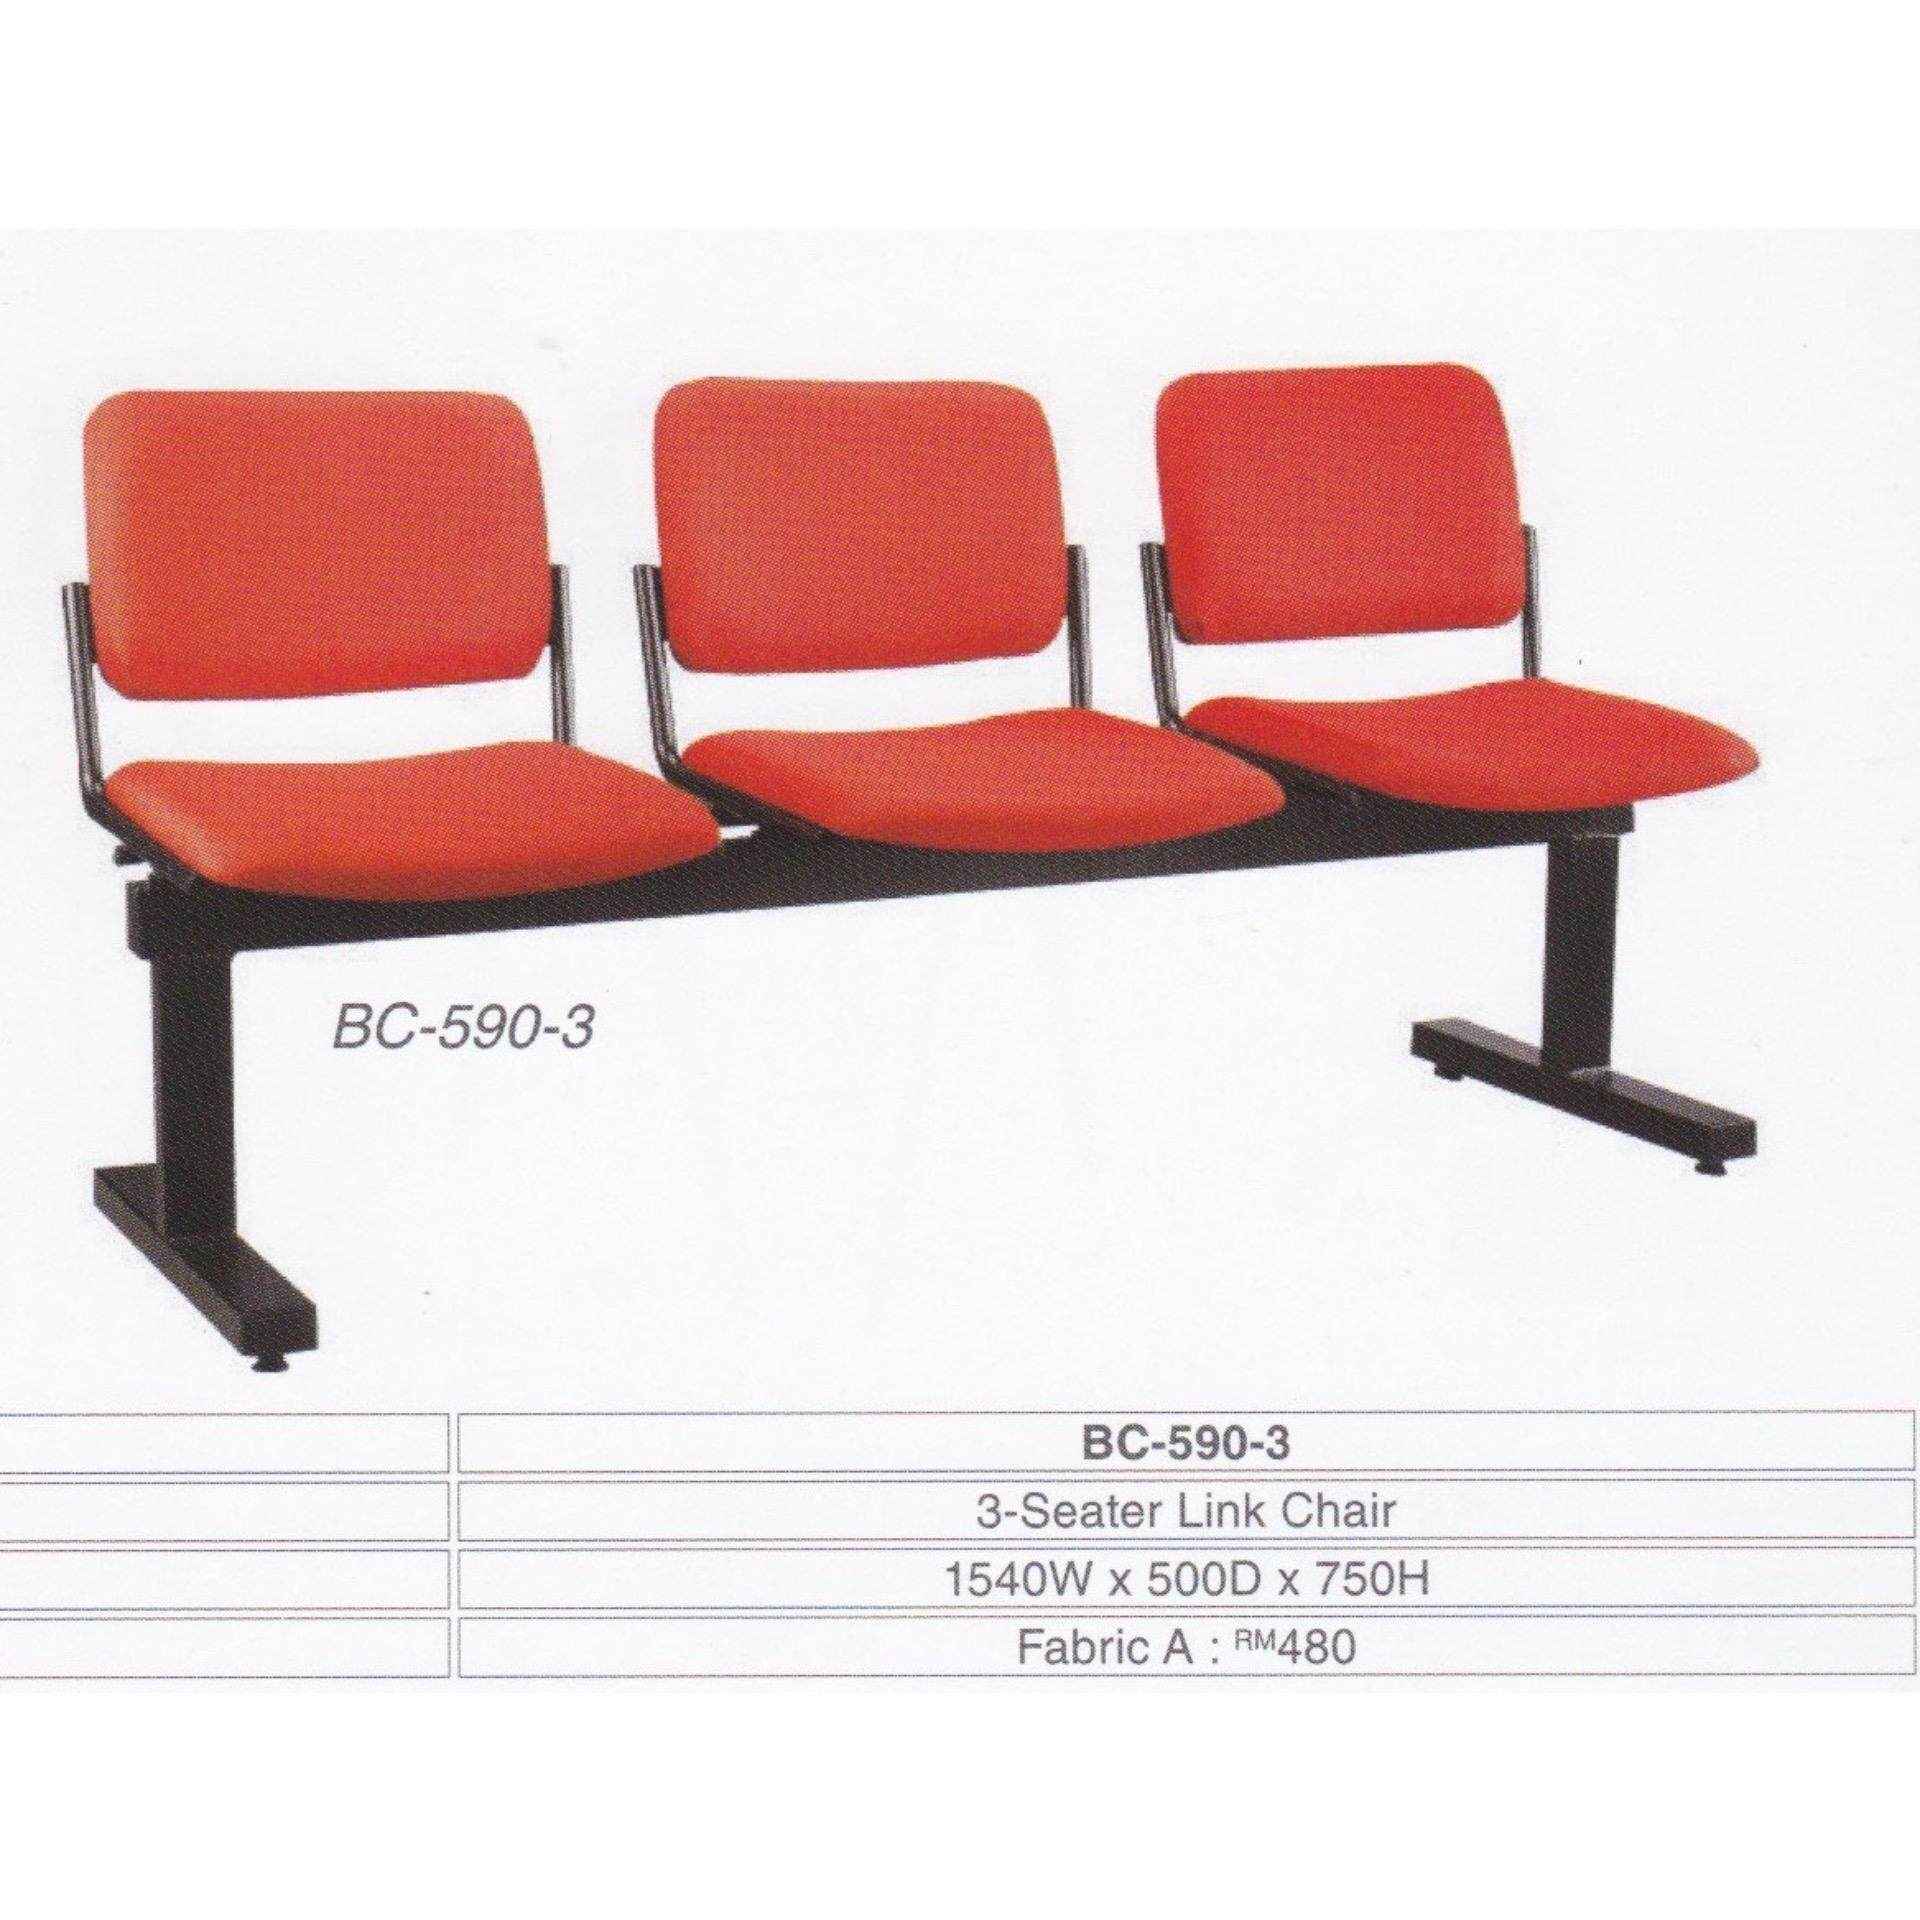 Deco Waiting Area 3-Seater Link Cushion Chair Hall Clinic Office (Red Color) L1540MM X D500MM X H750MM Pre-Order 2 Weeks